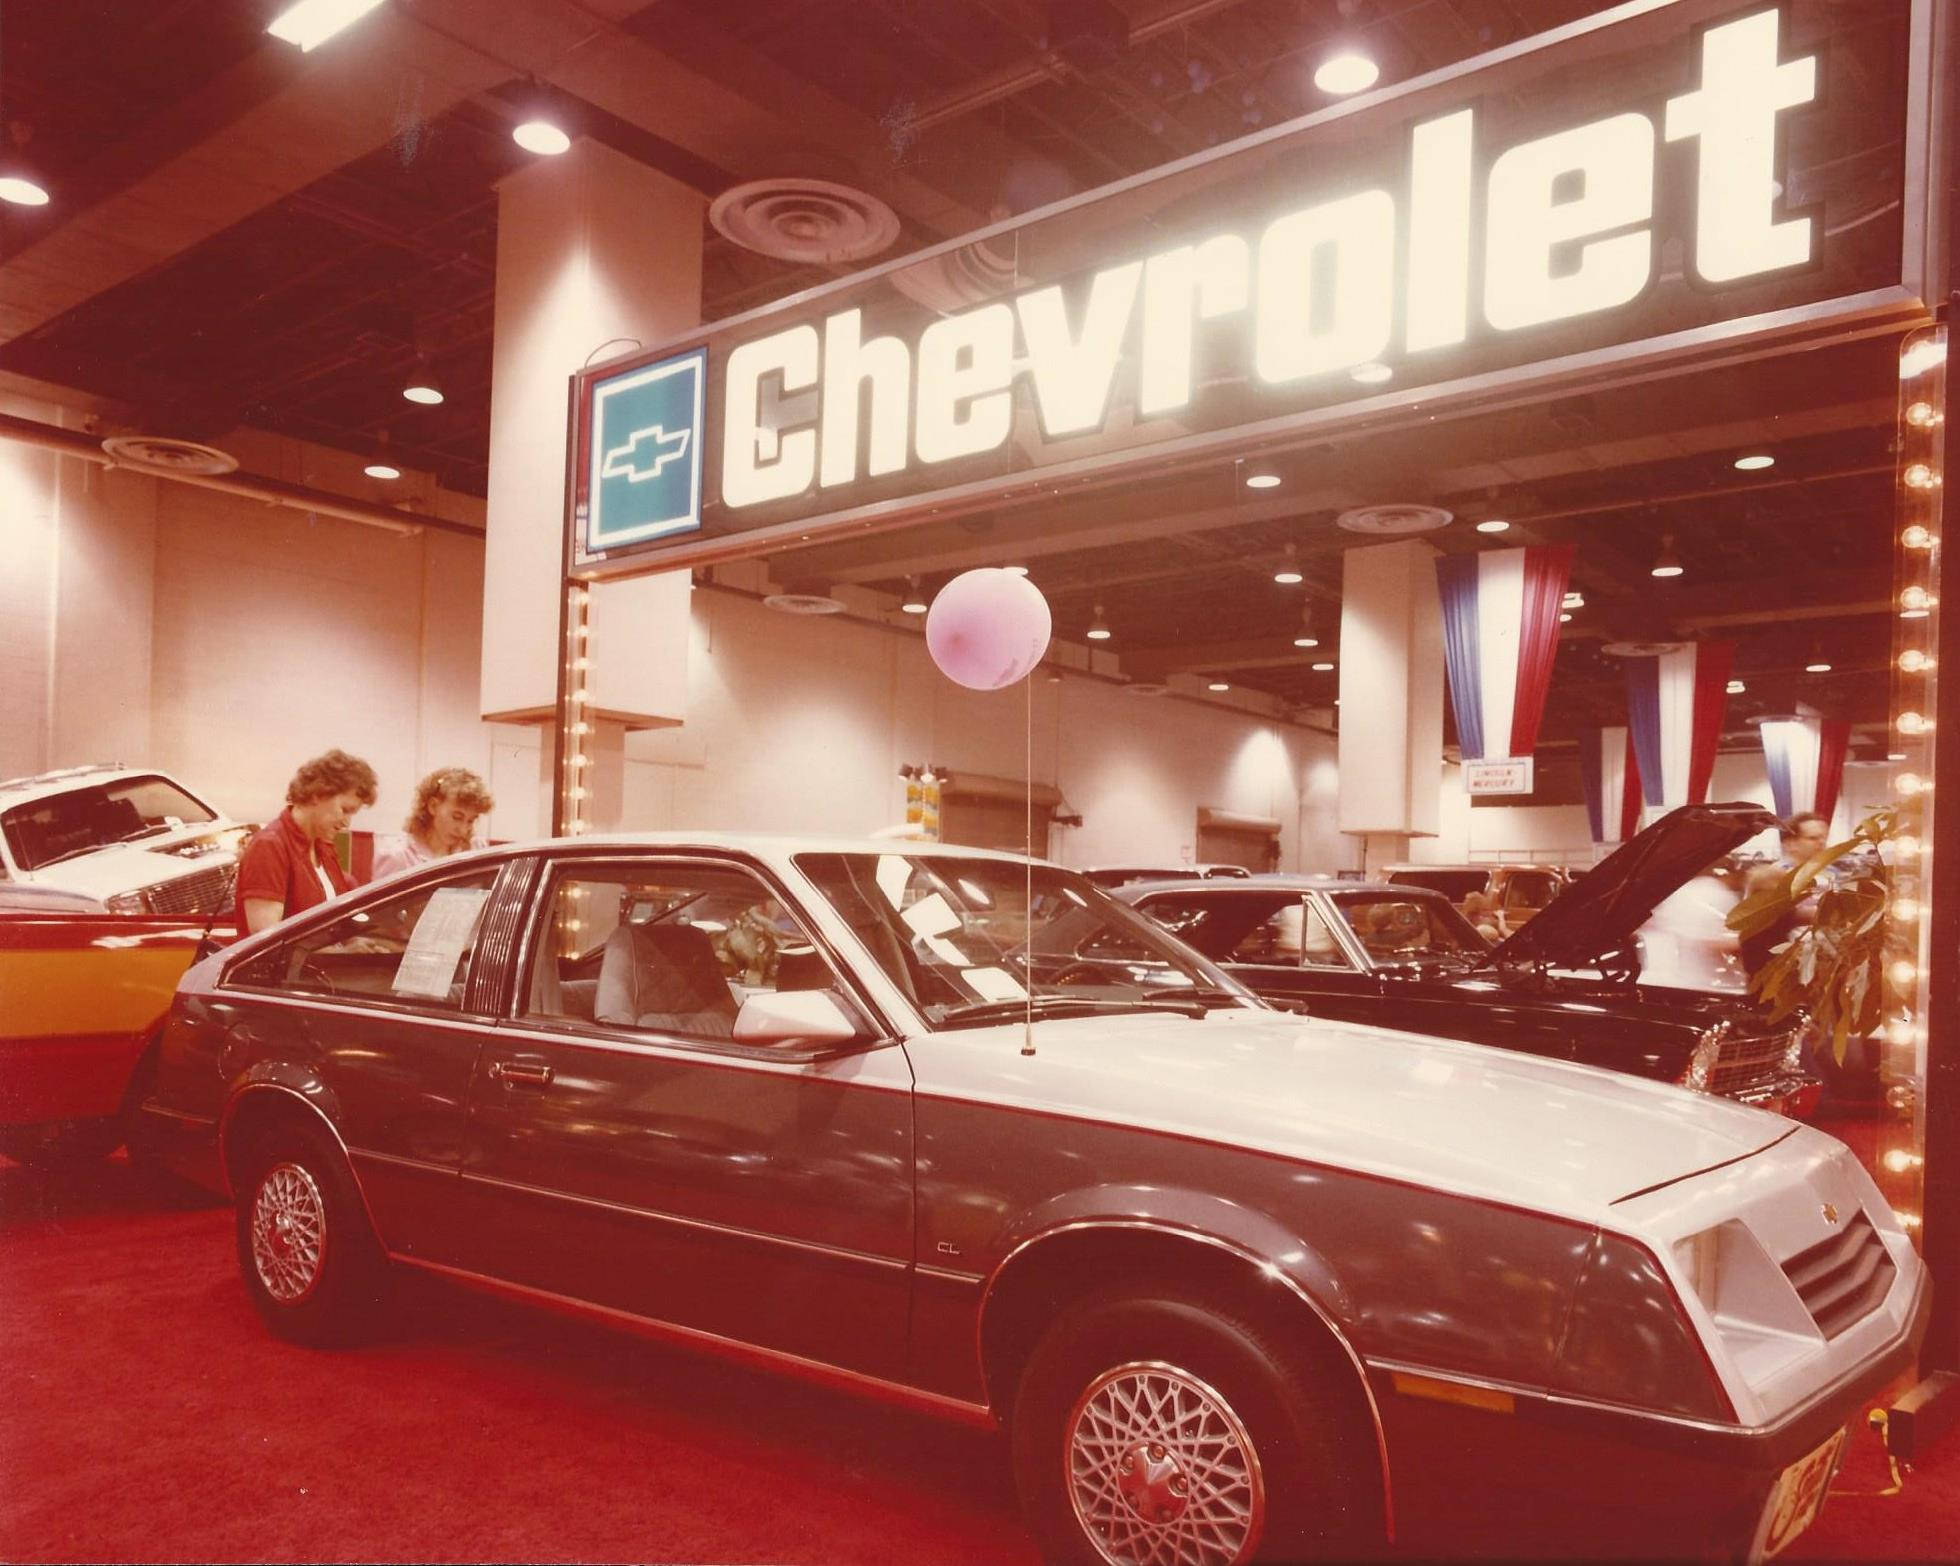 1982 Chevrolet display pic 6